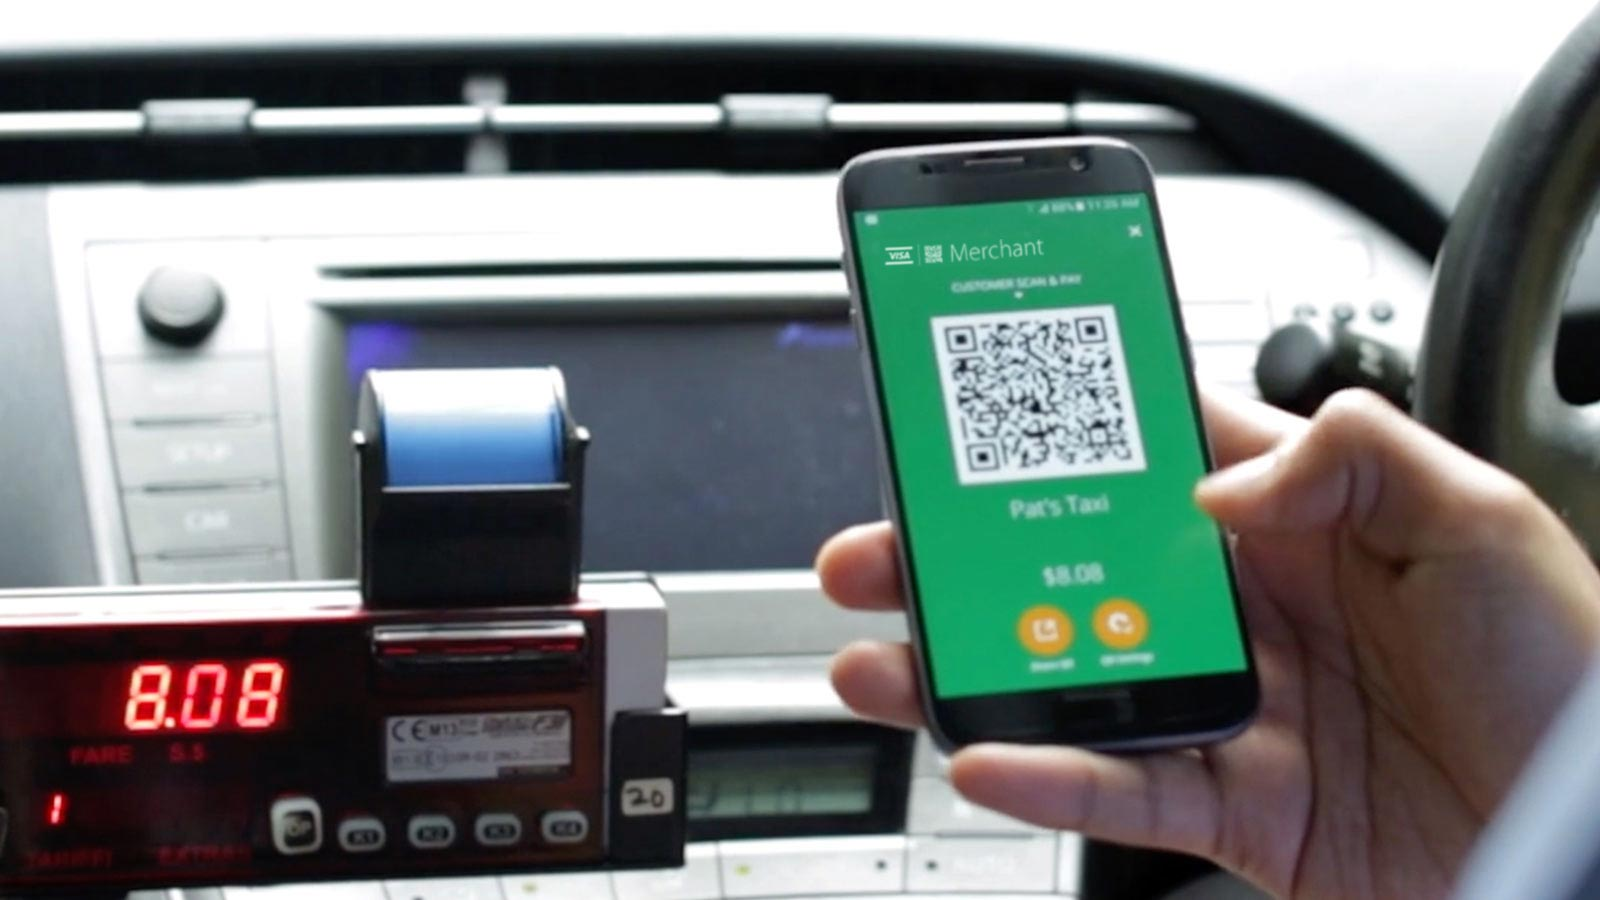 scan-to-pay-consumer-cabs-1600x900